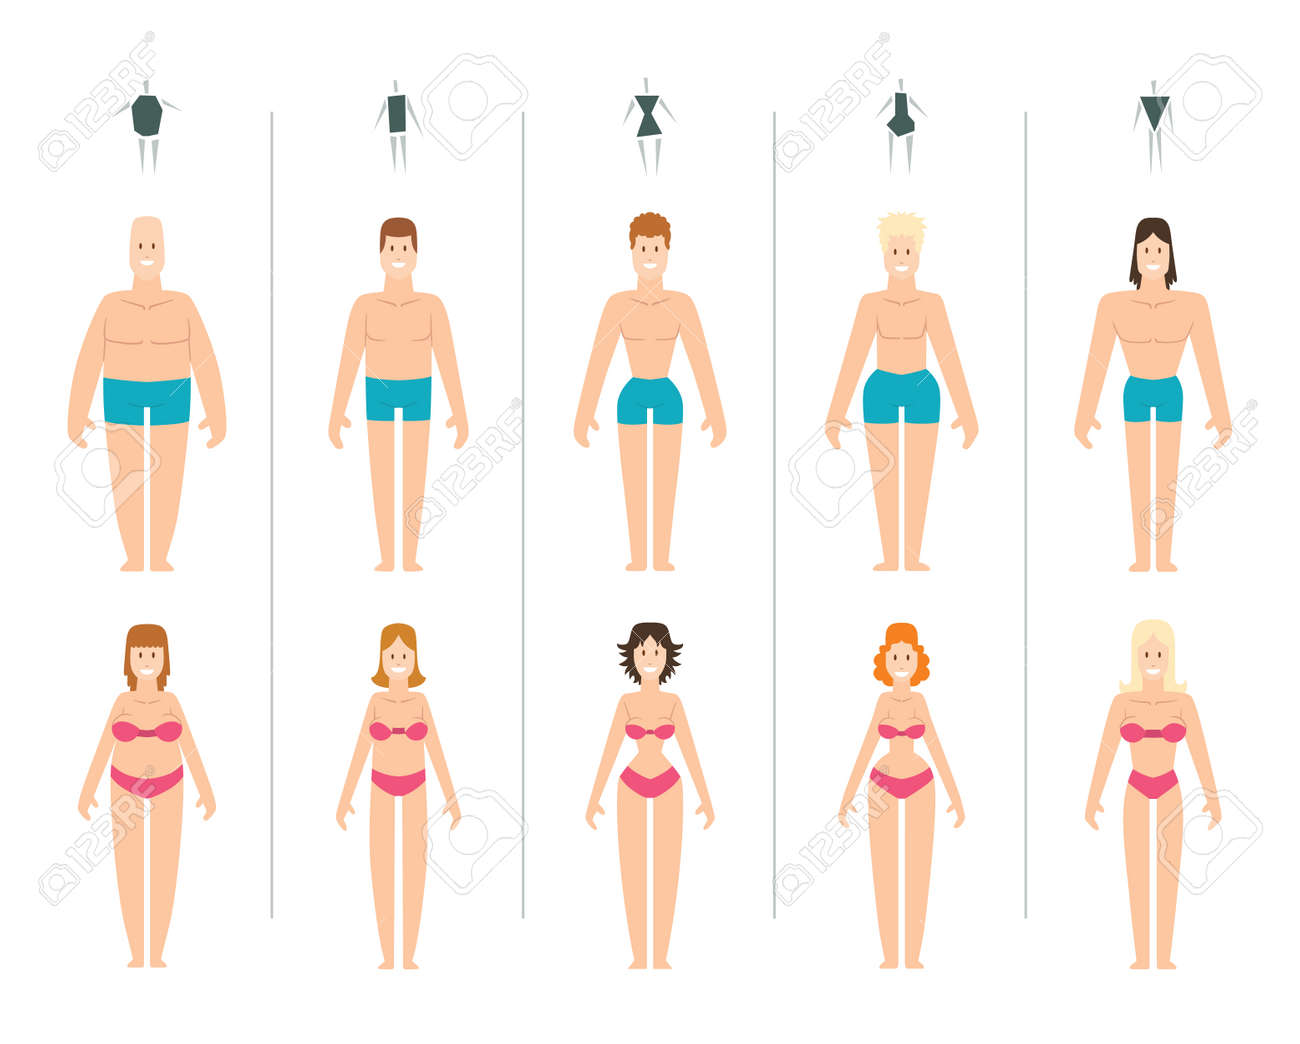 1e1c58073 Female body types vector illustration. Body types slim anatomy constitution  hourglass women proportions set.